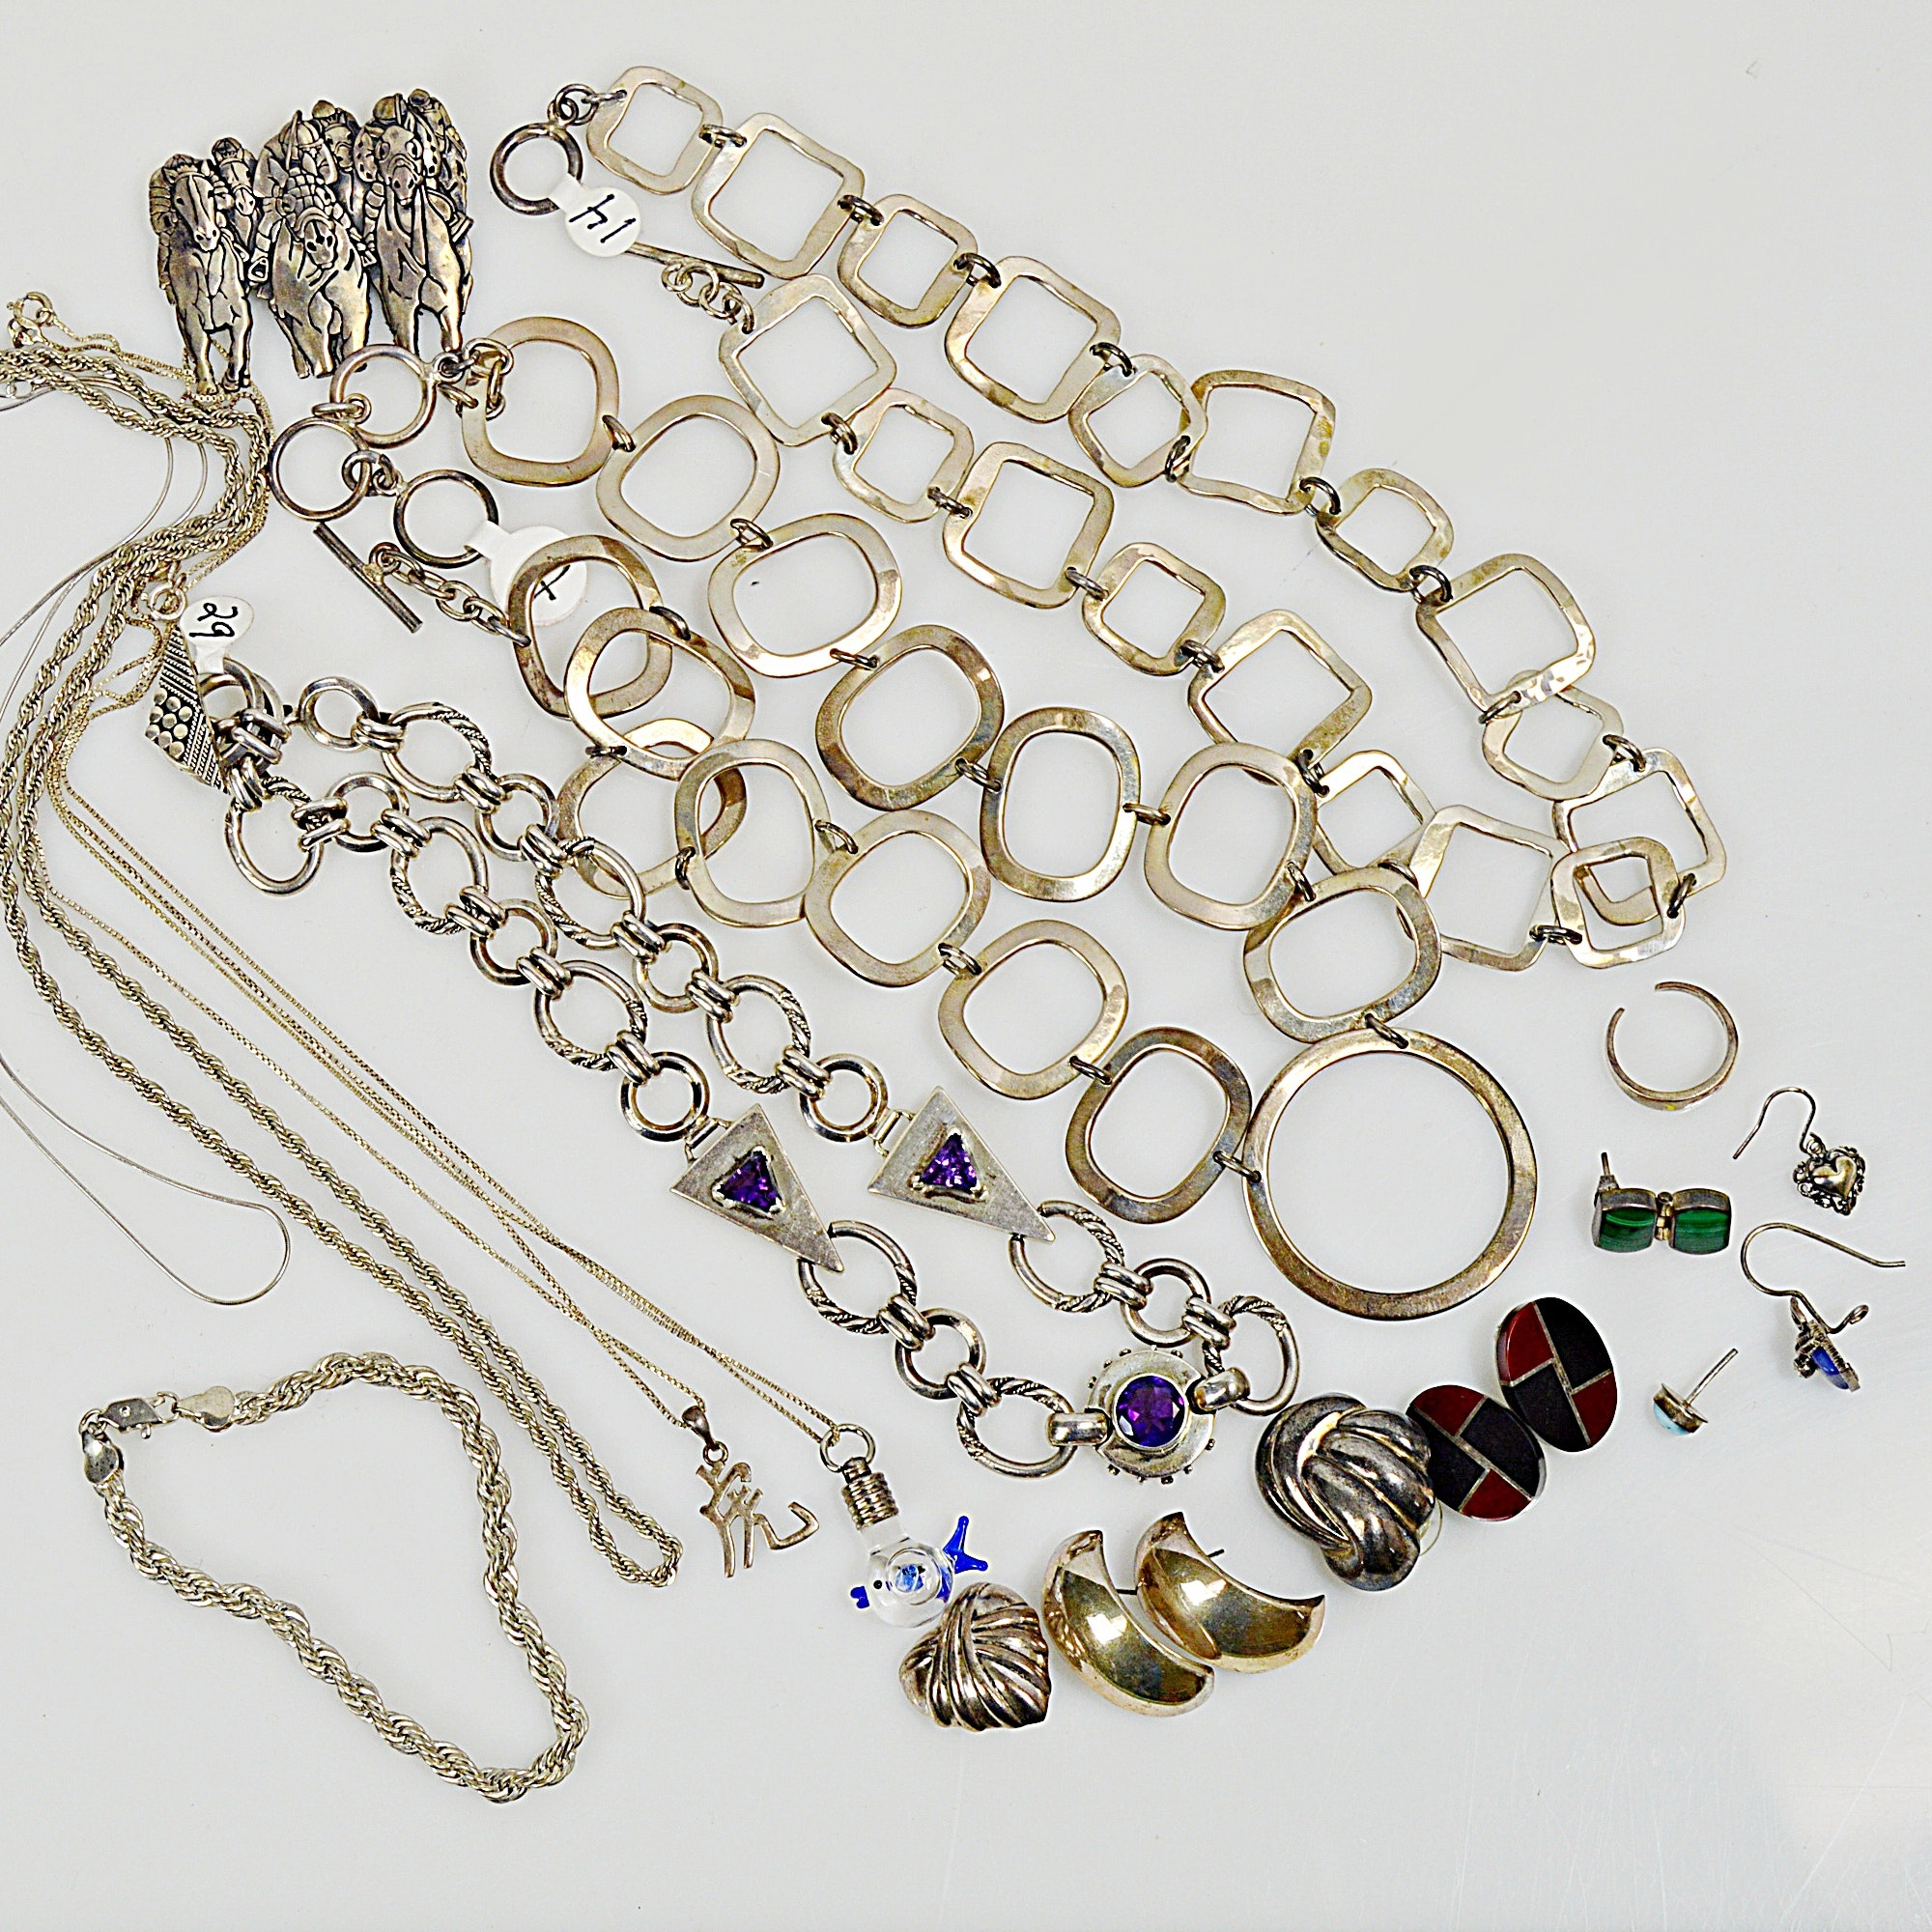 Taxco Mexico Sterling and Other Sterling Silver Jewelry